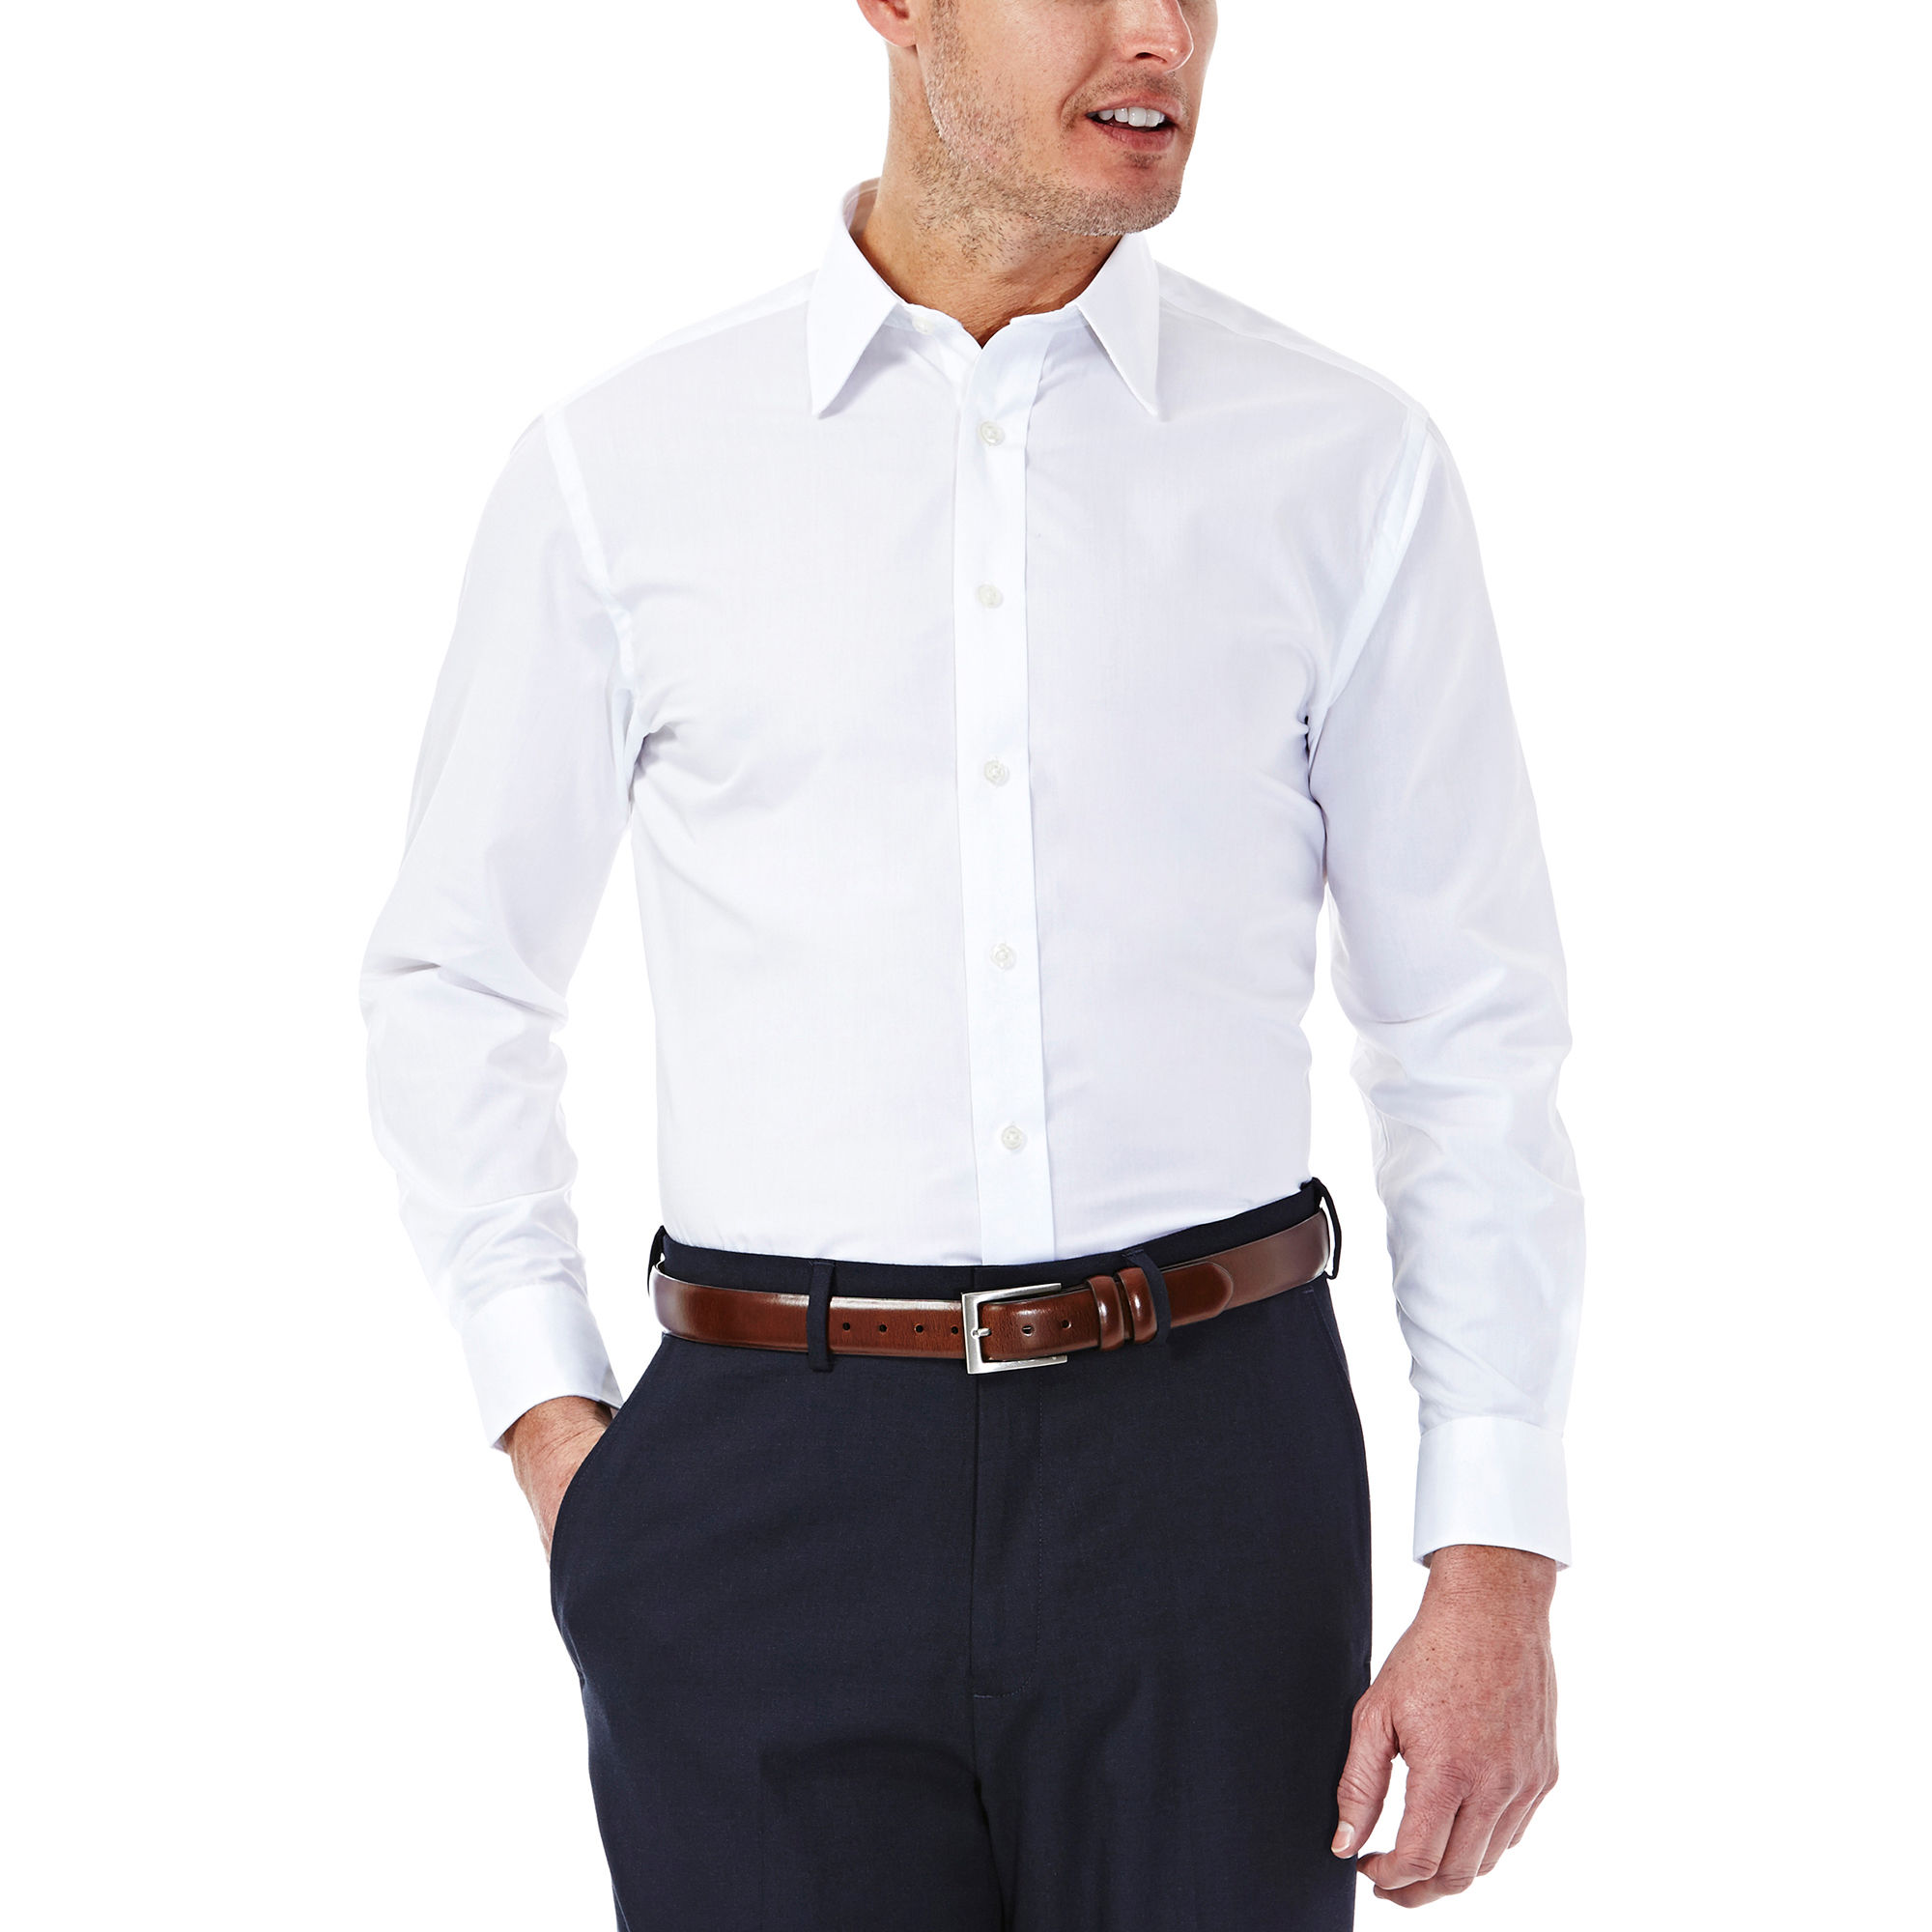 Dress shirts solid poplin dress shirt, HCTCSPH